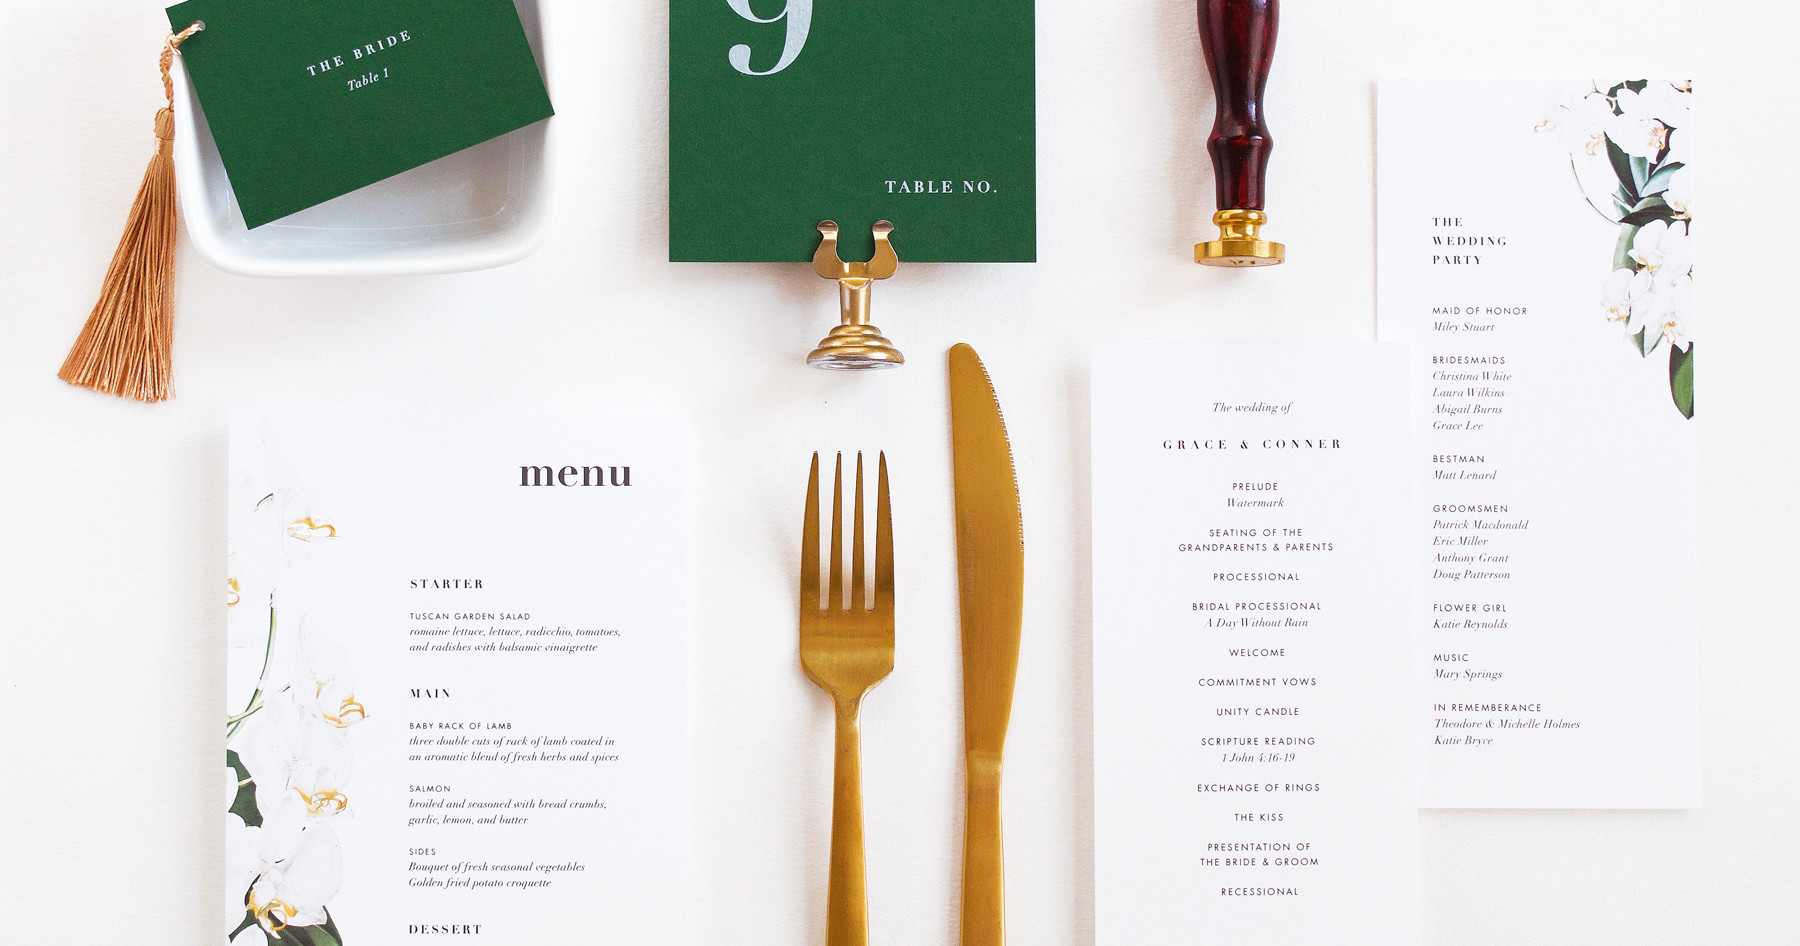 Orchid program card, menu card, place card with gold tassel, and table number.